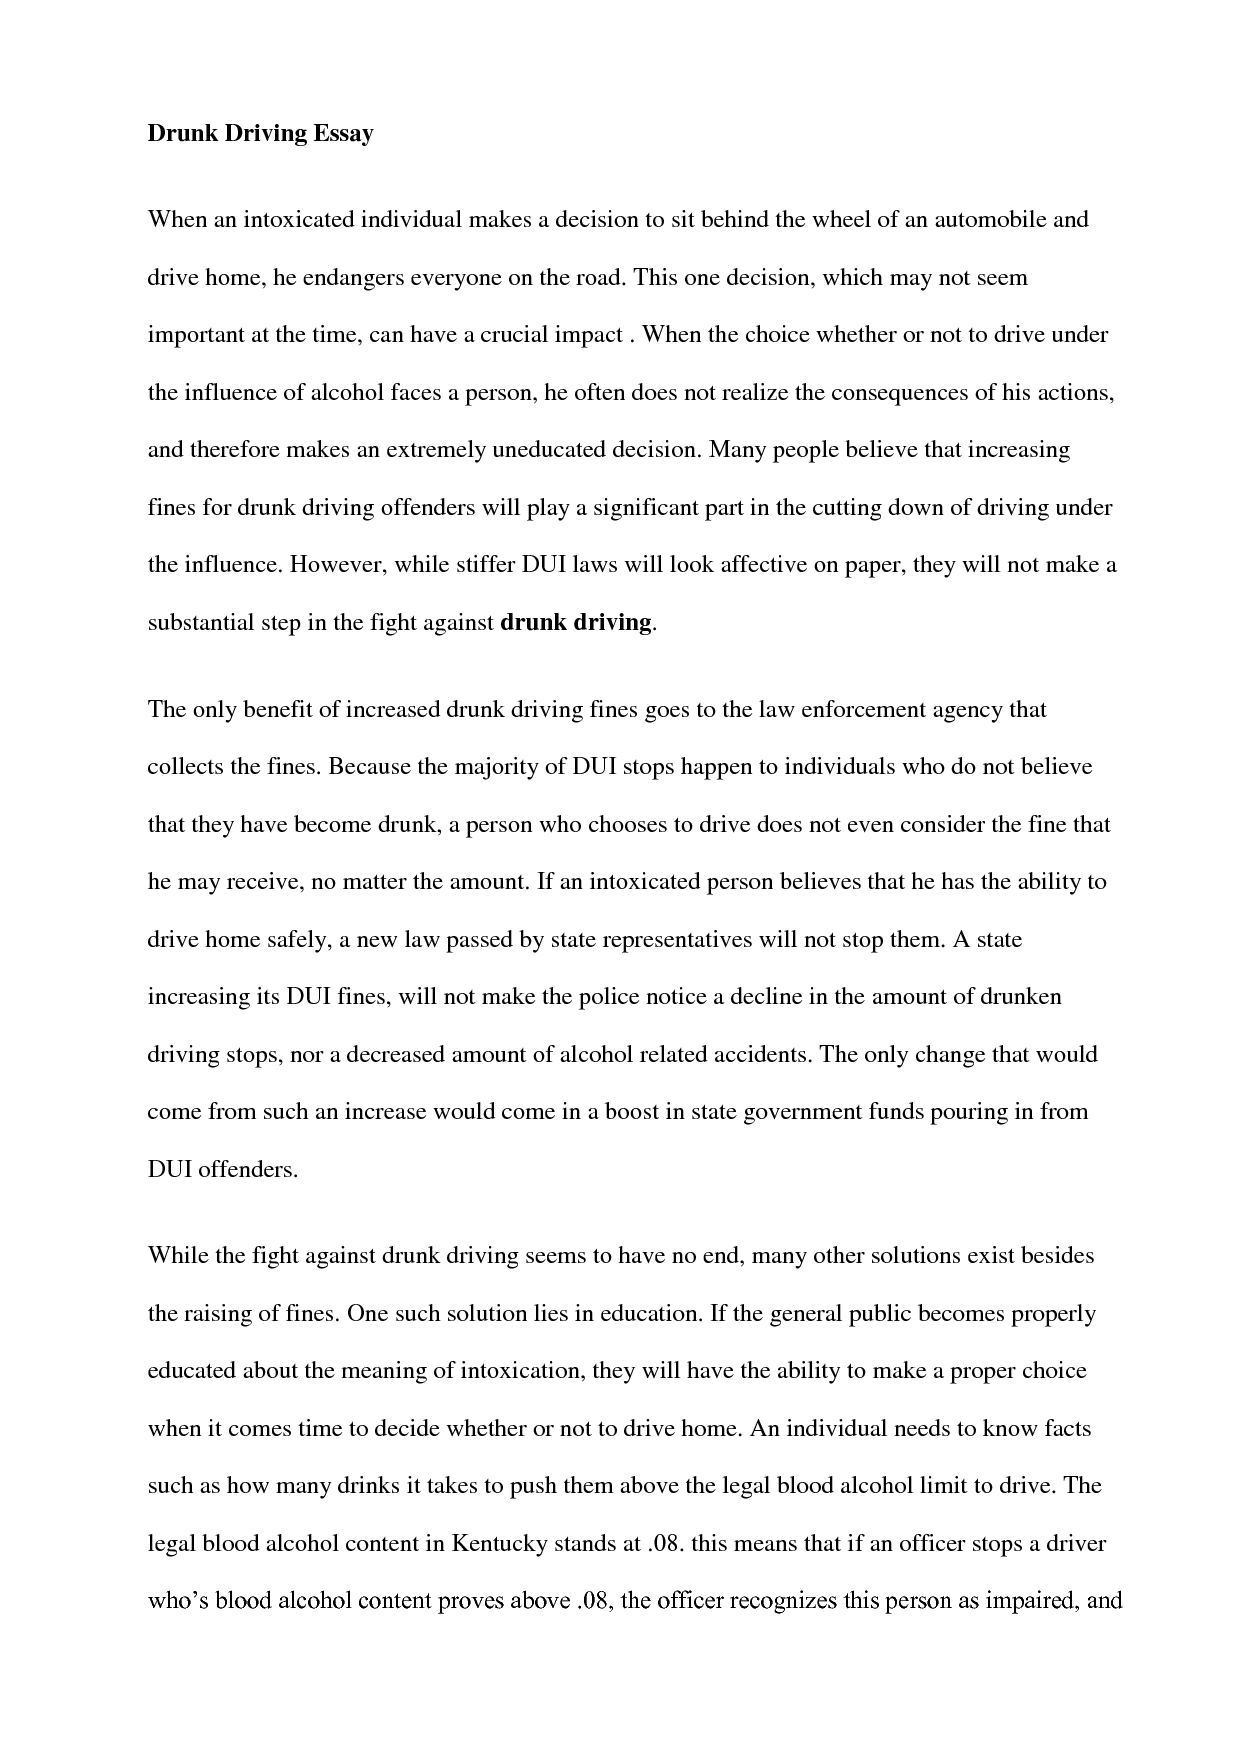 alcoholism no easy solution essay Problem-solution essays are a common essay type, especially for short essays such as subject exams or ieltsthe page gives information on what they are, how to structure this type of essay, and gives an example problem-solution essay on the topic of obesity and fitness levels.